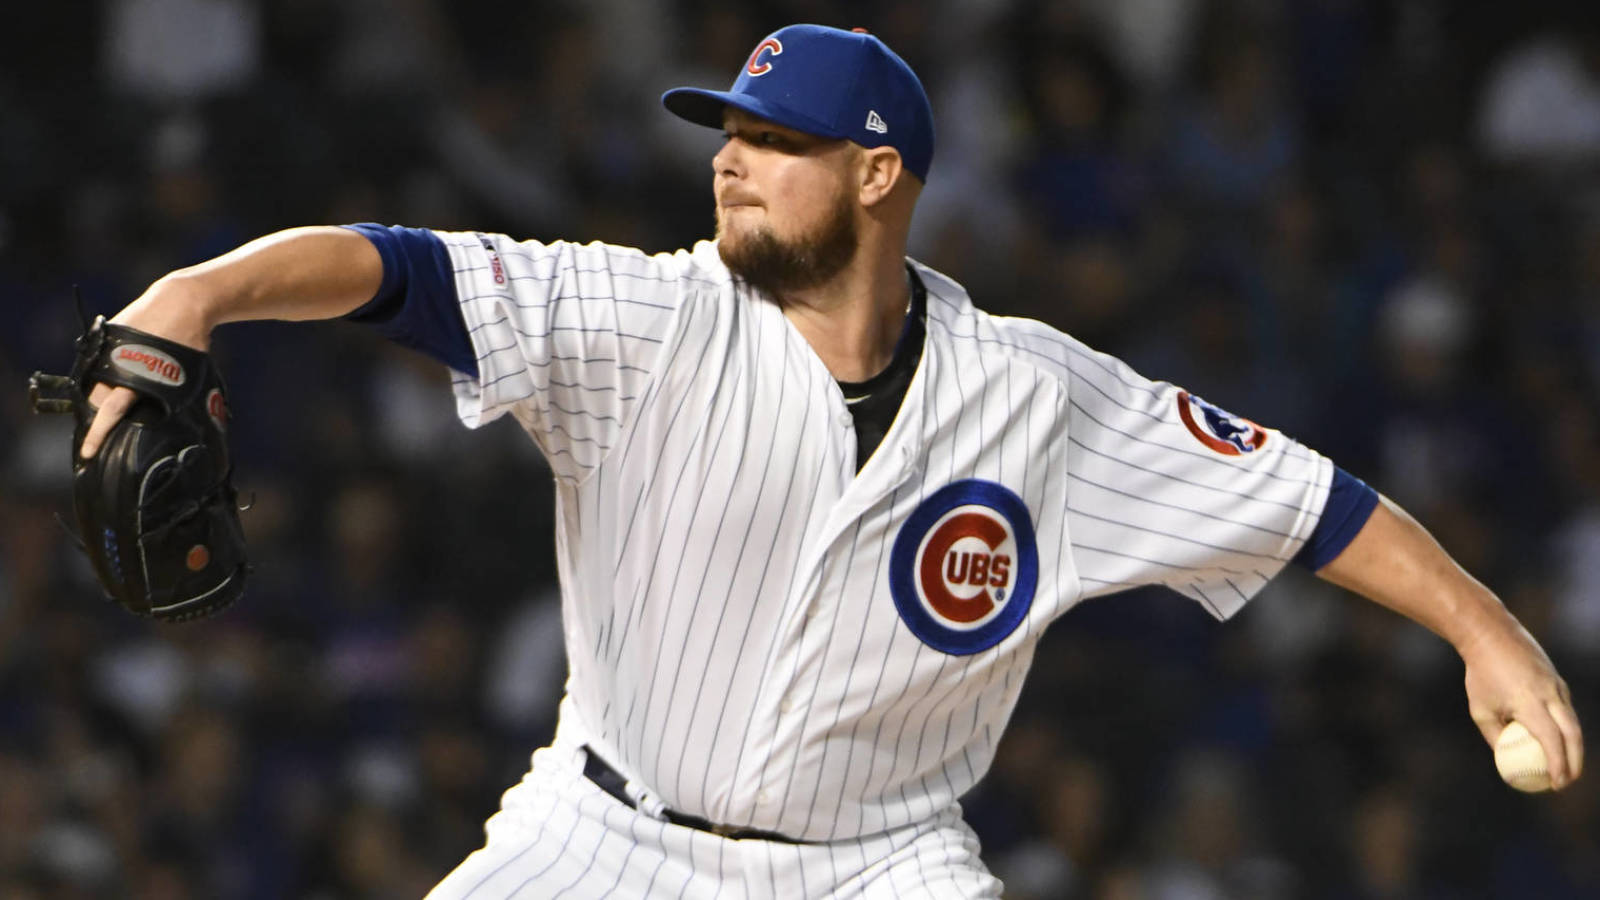 Cubs will have major rotation holes to fill for the 2021 season